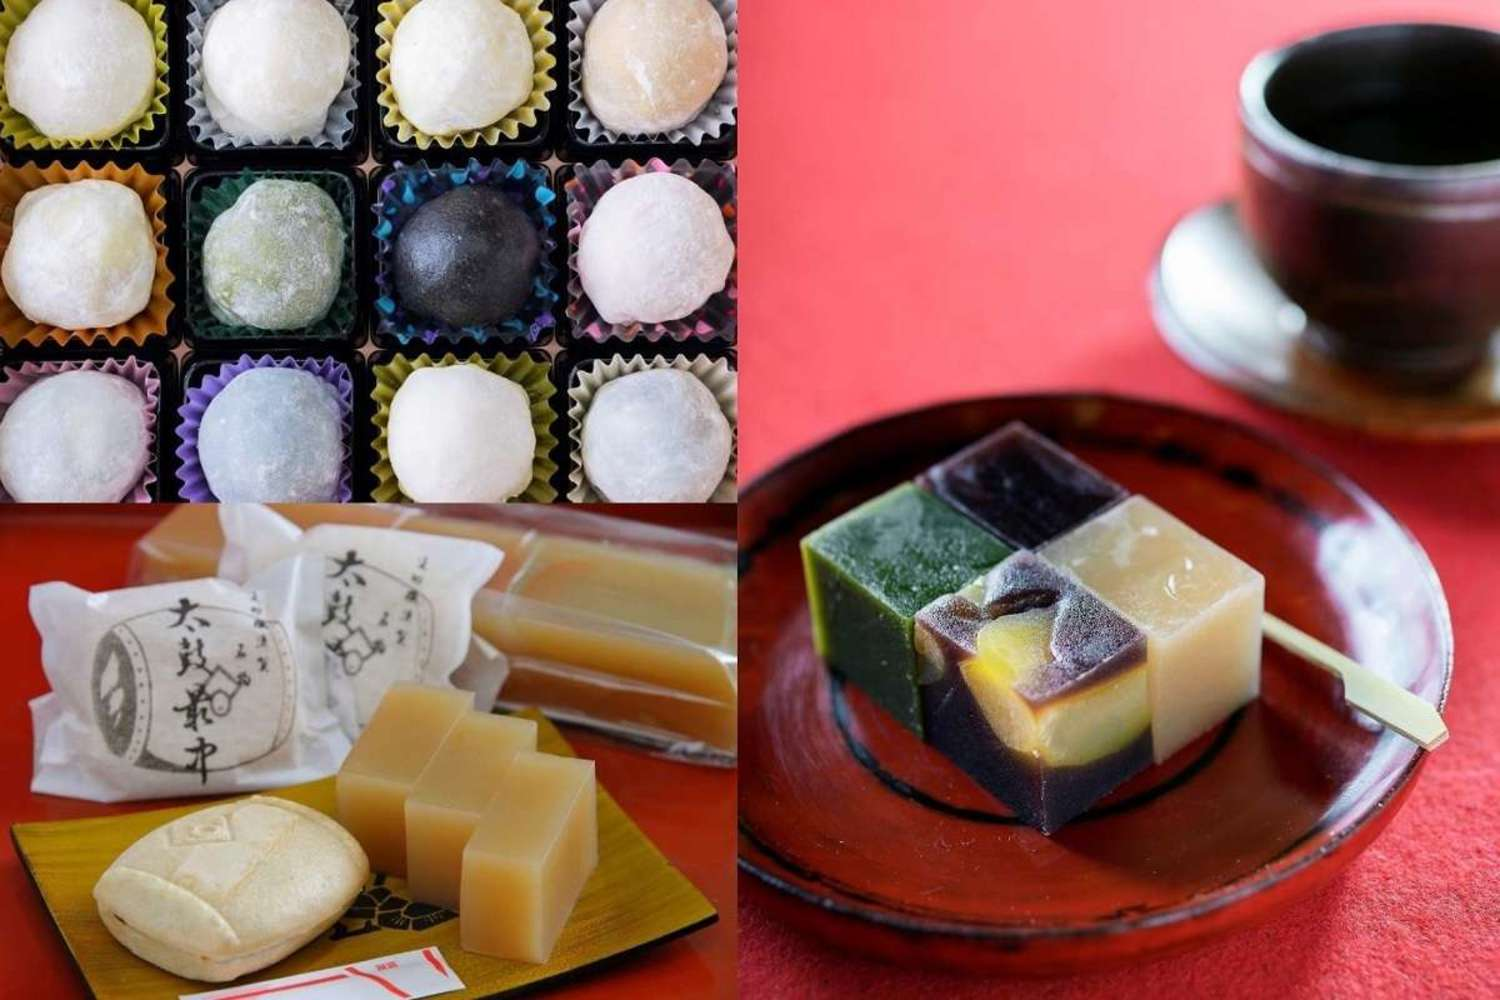 Three selections of good Japanese confectionery shops of Kakegawa who shines in atmospheric cityscape